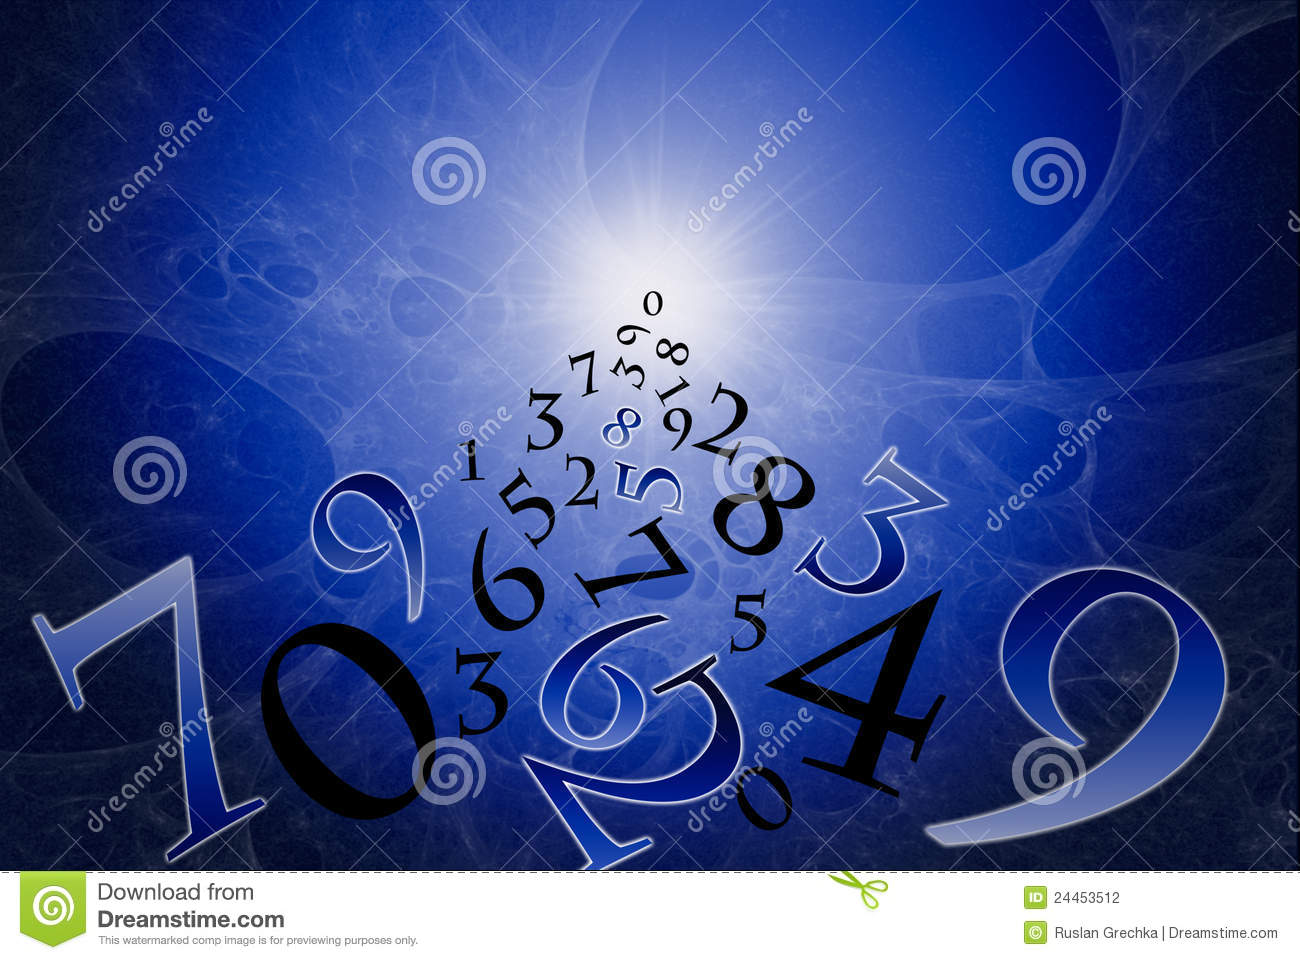 Numerology meaning of 101 picture 1